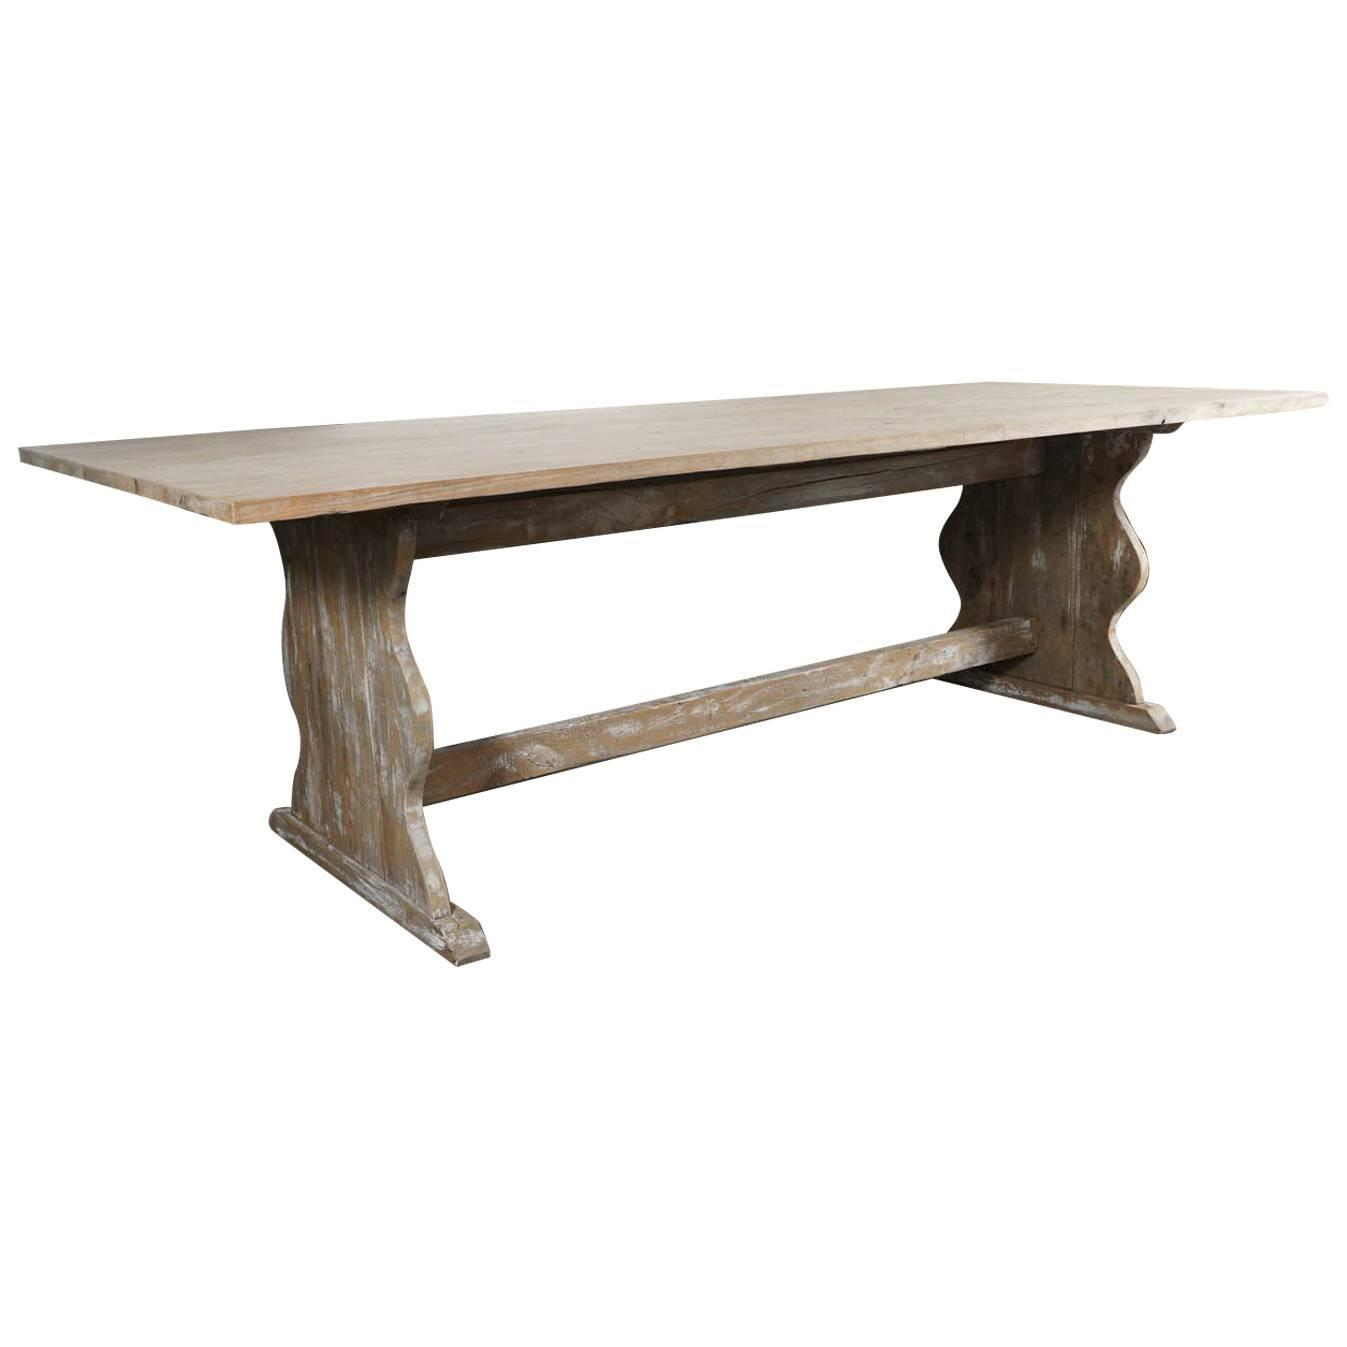 Rustic country farm table for sale at 1stdibs for Rustic farm tables for sale